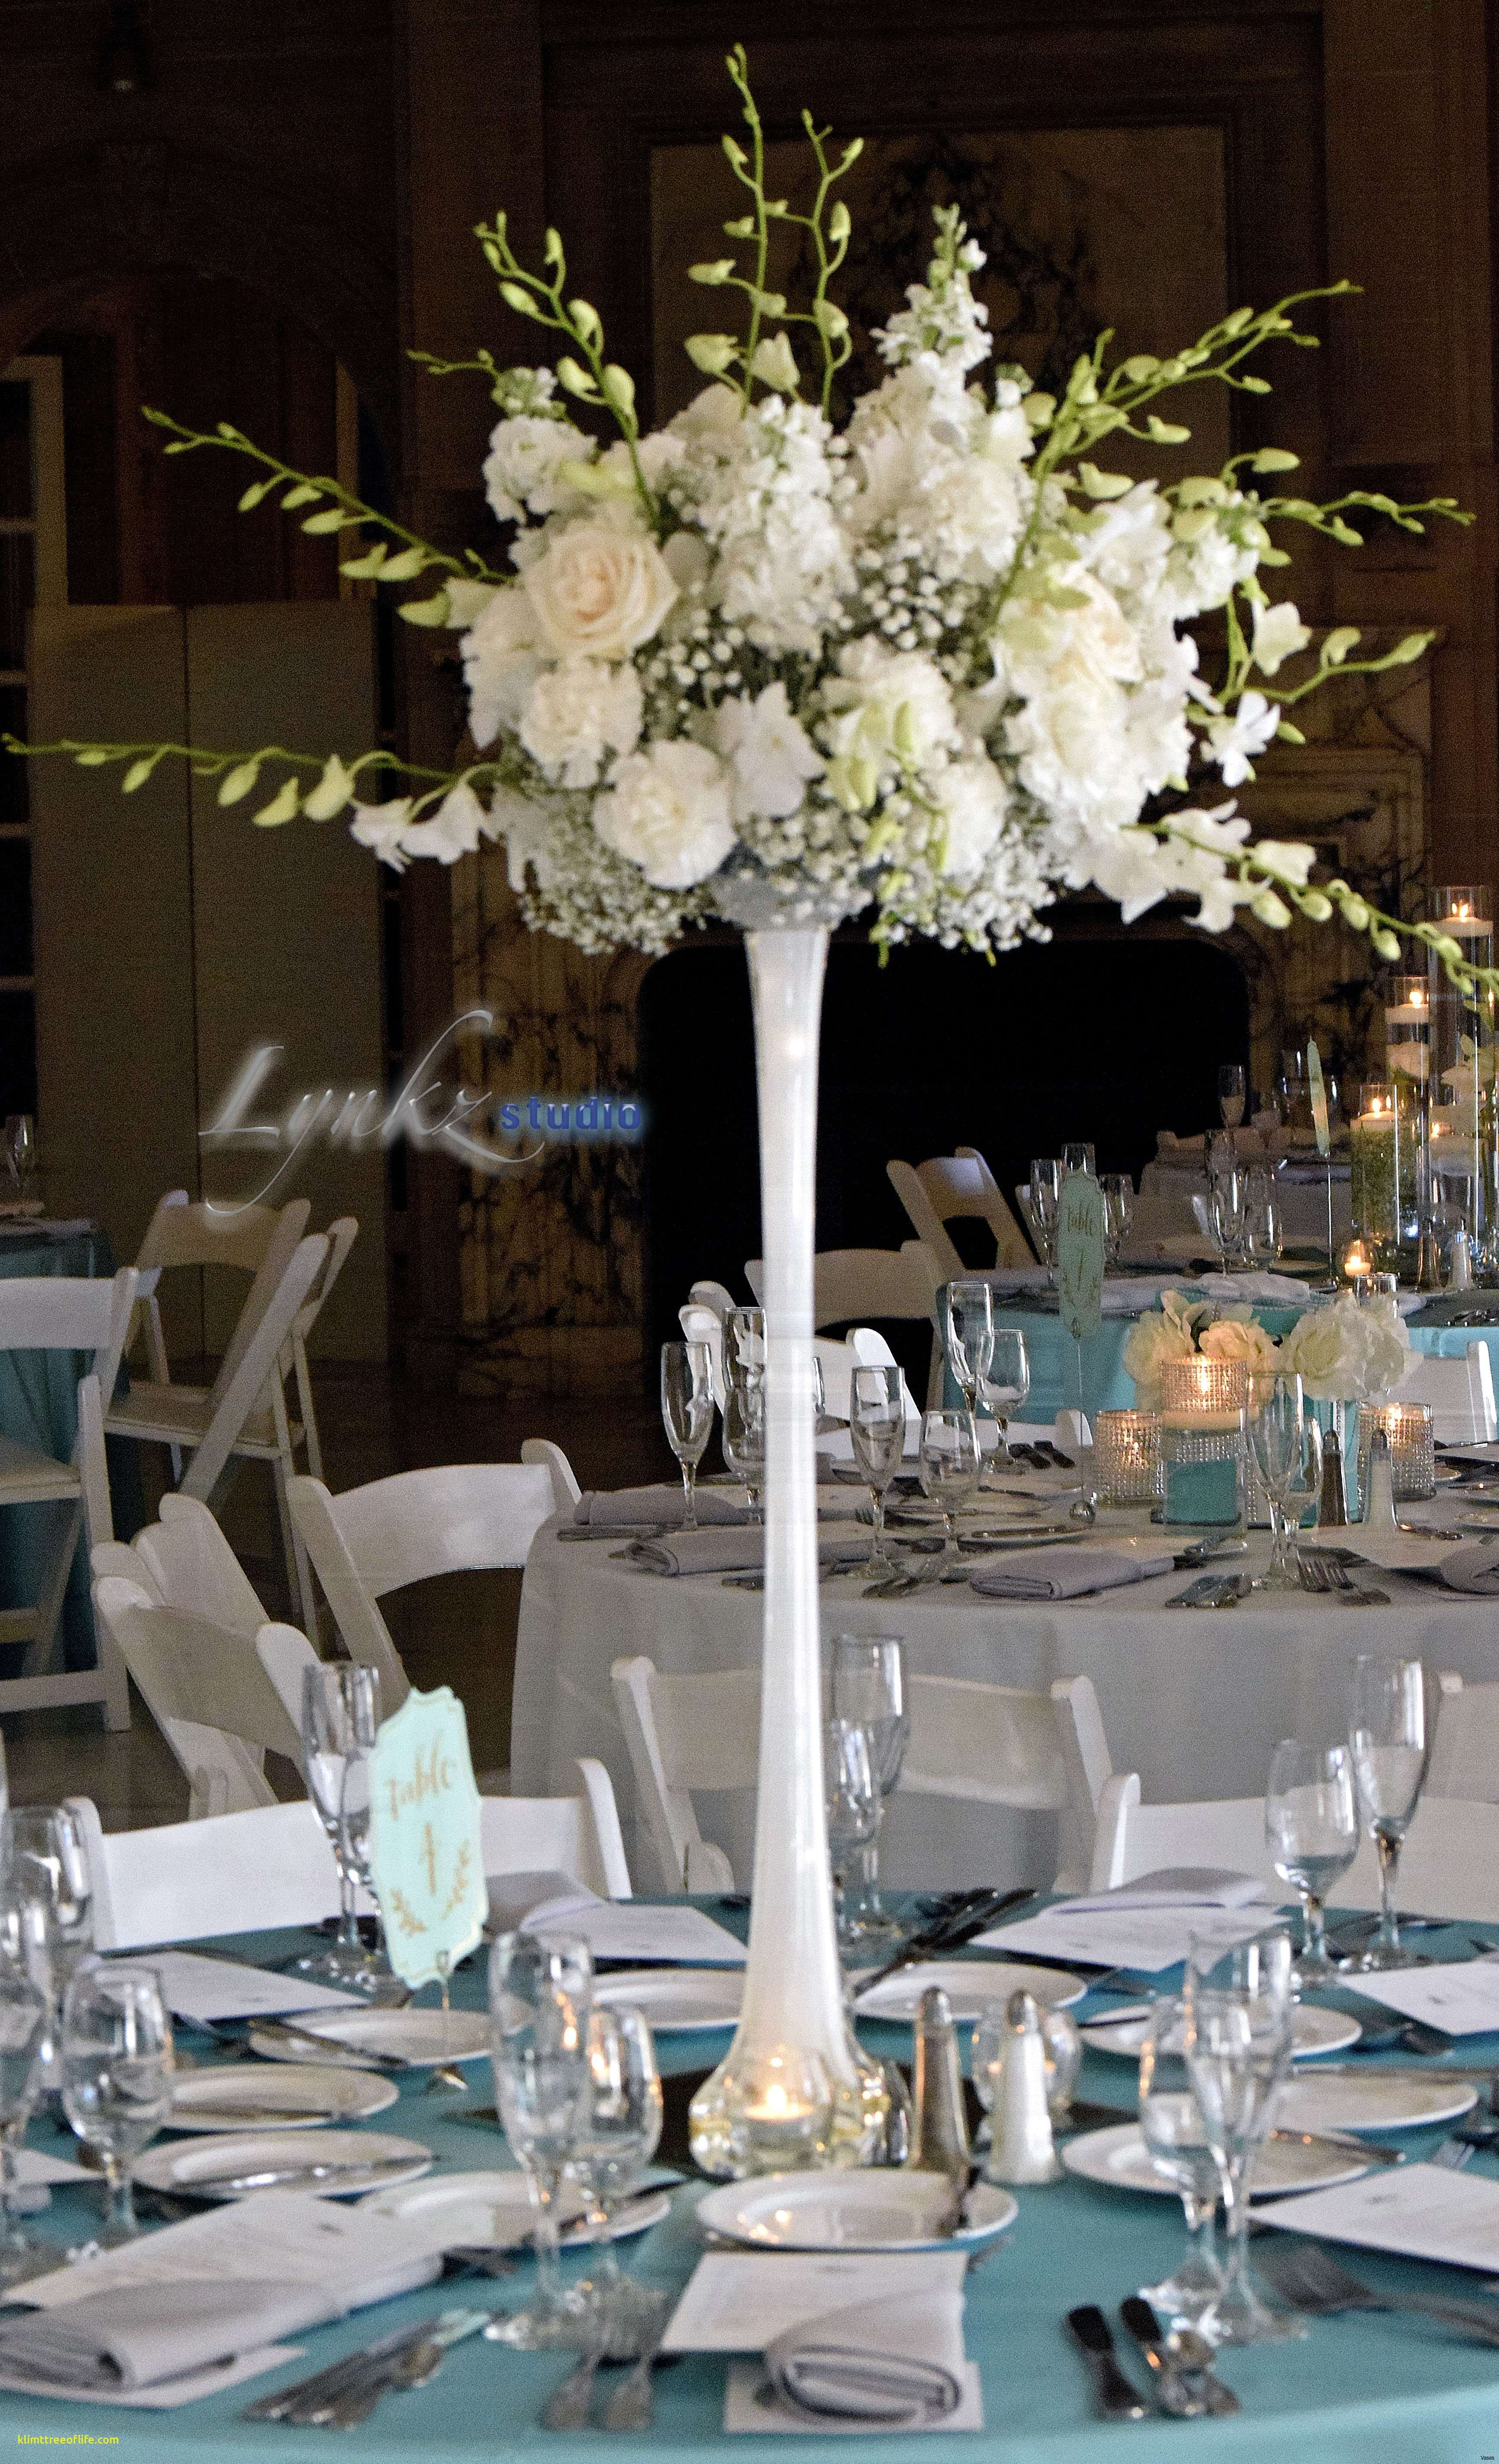 Lovely Wedding Centerpieces Lights Wedding Decor Wedding Table